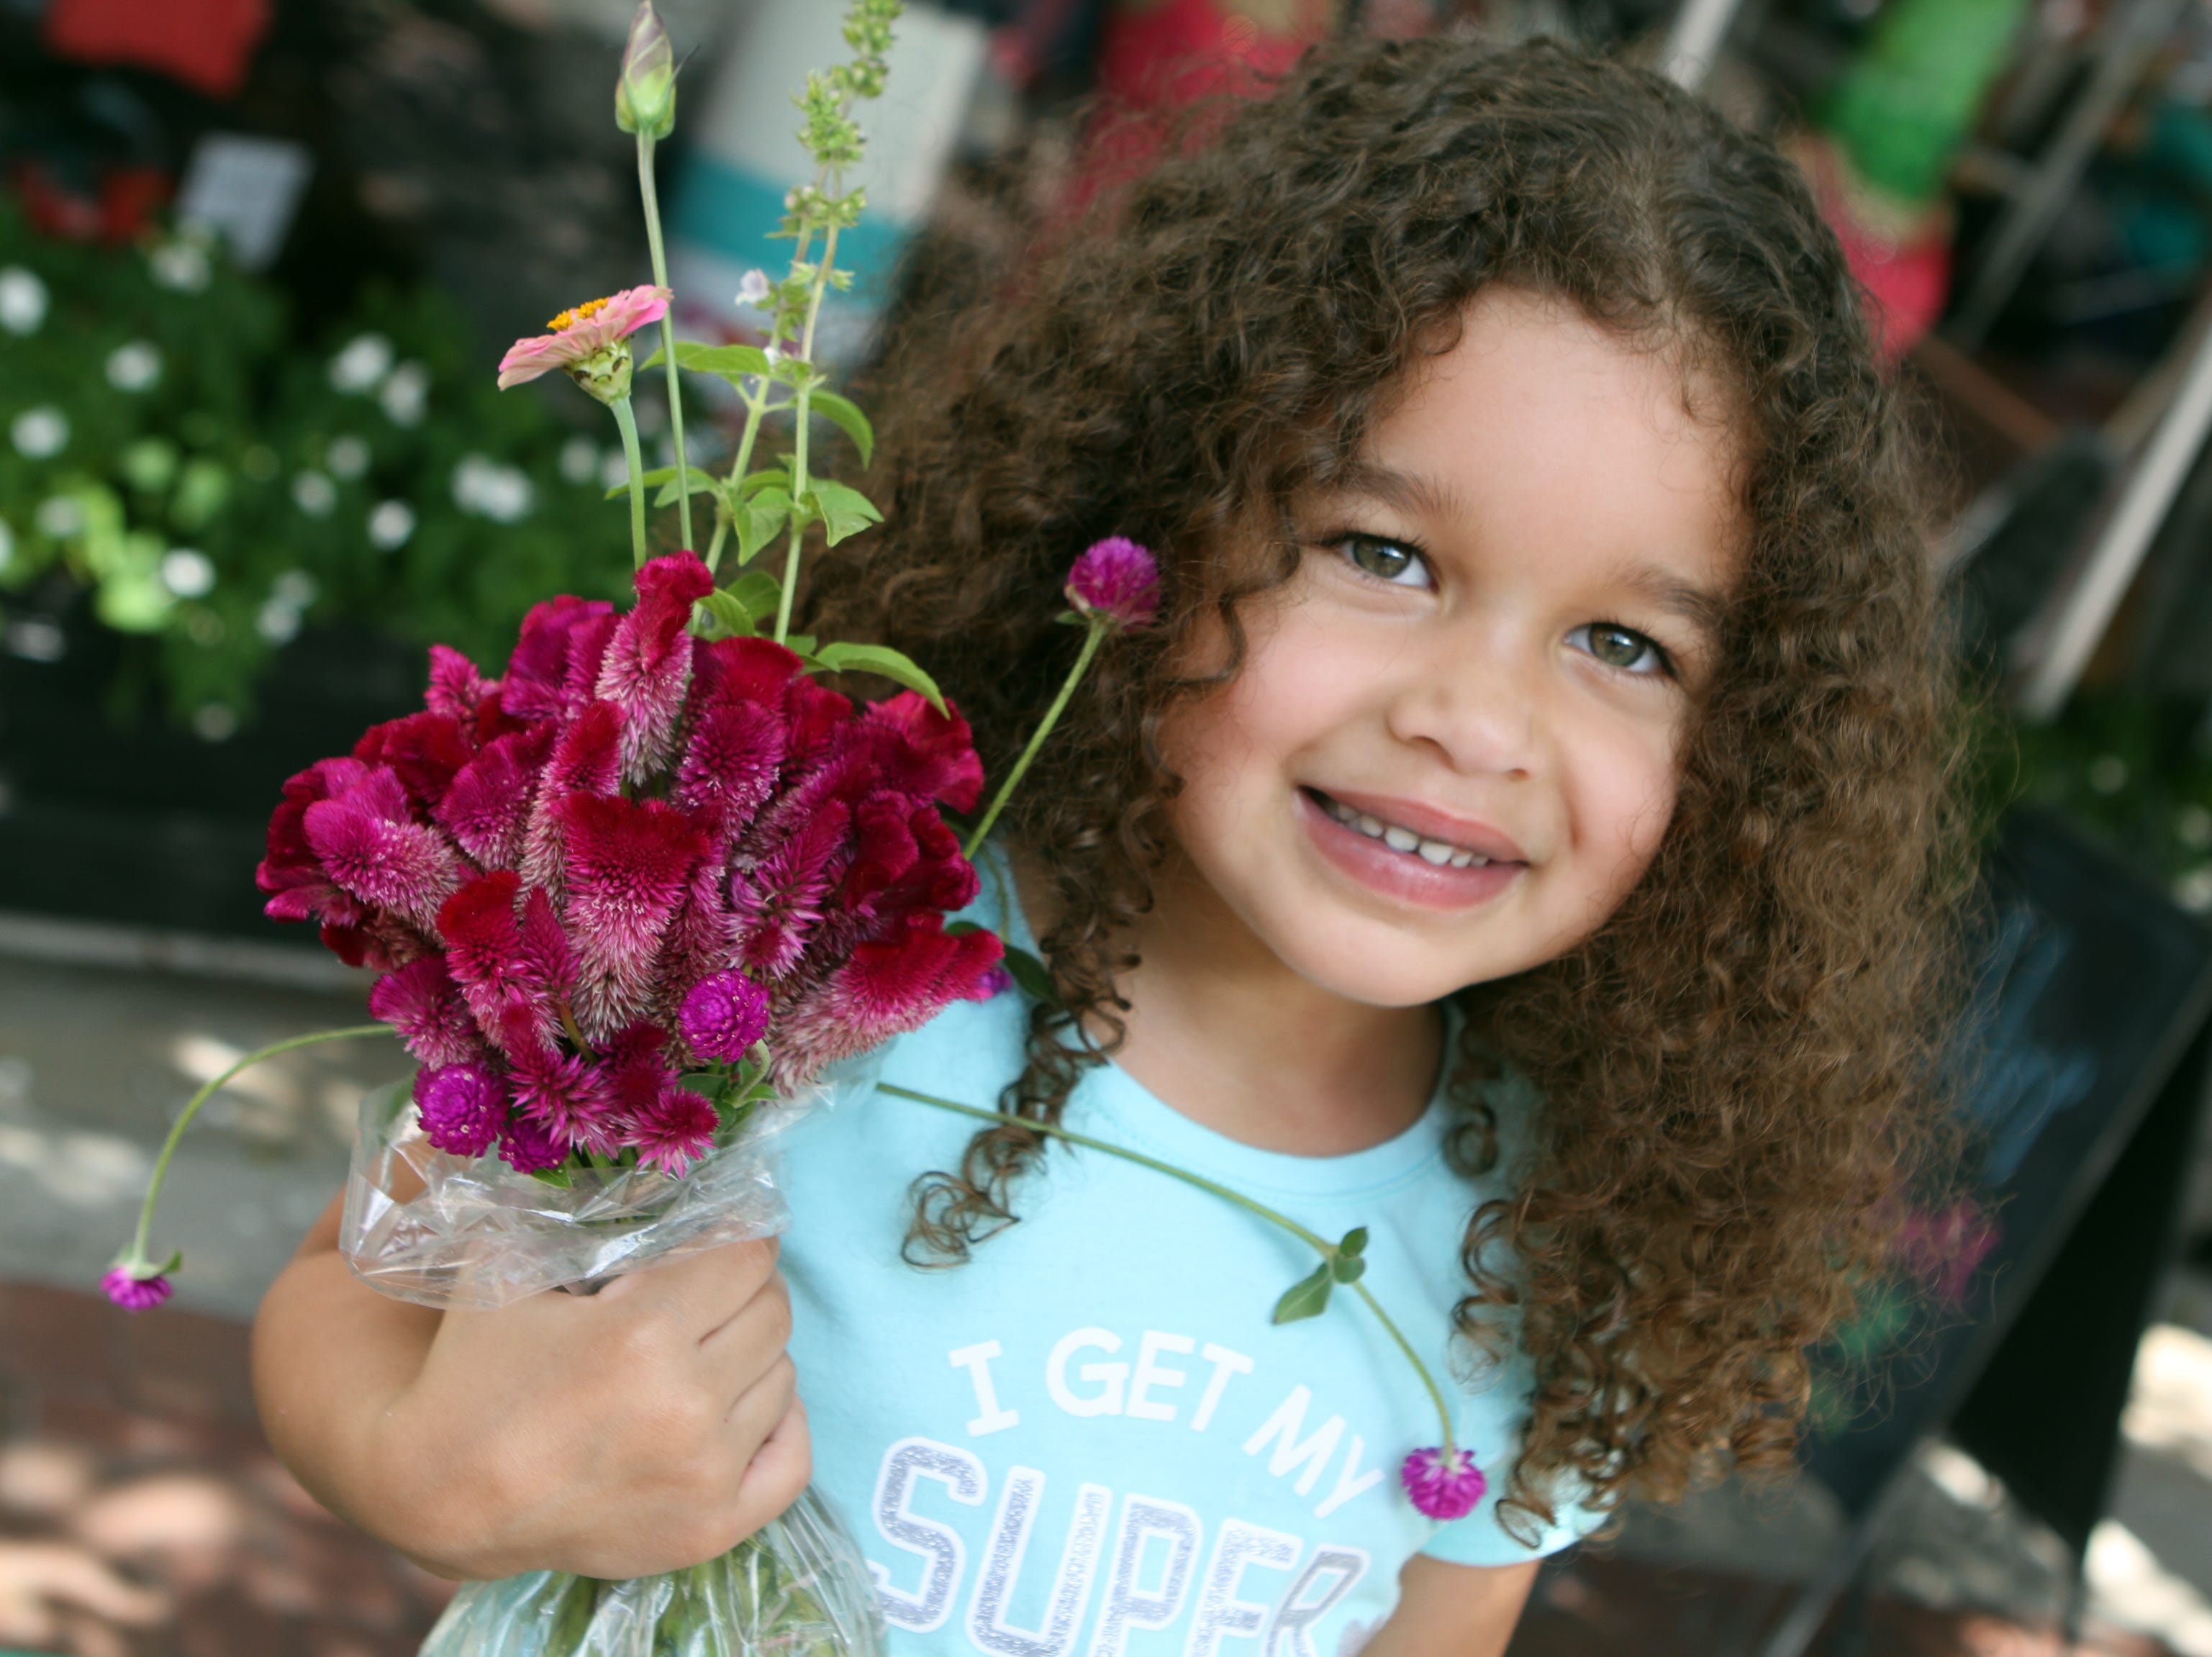 Phoenix Butler shows off her new flowers at Frolic on Franklin Saturday, Sept, 15, 2018.